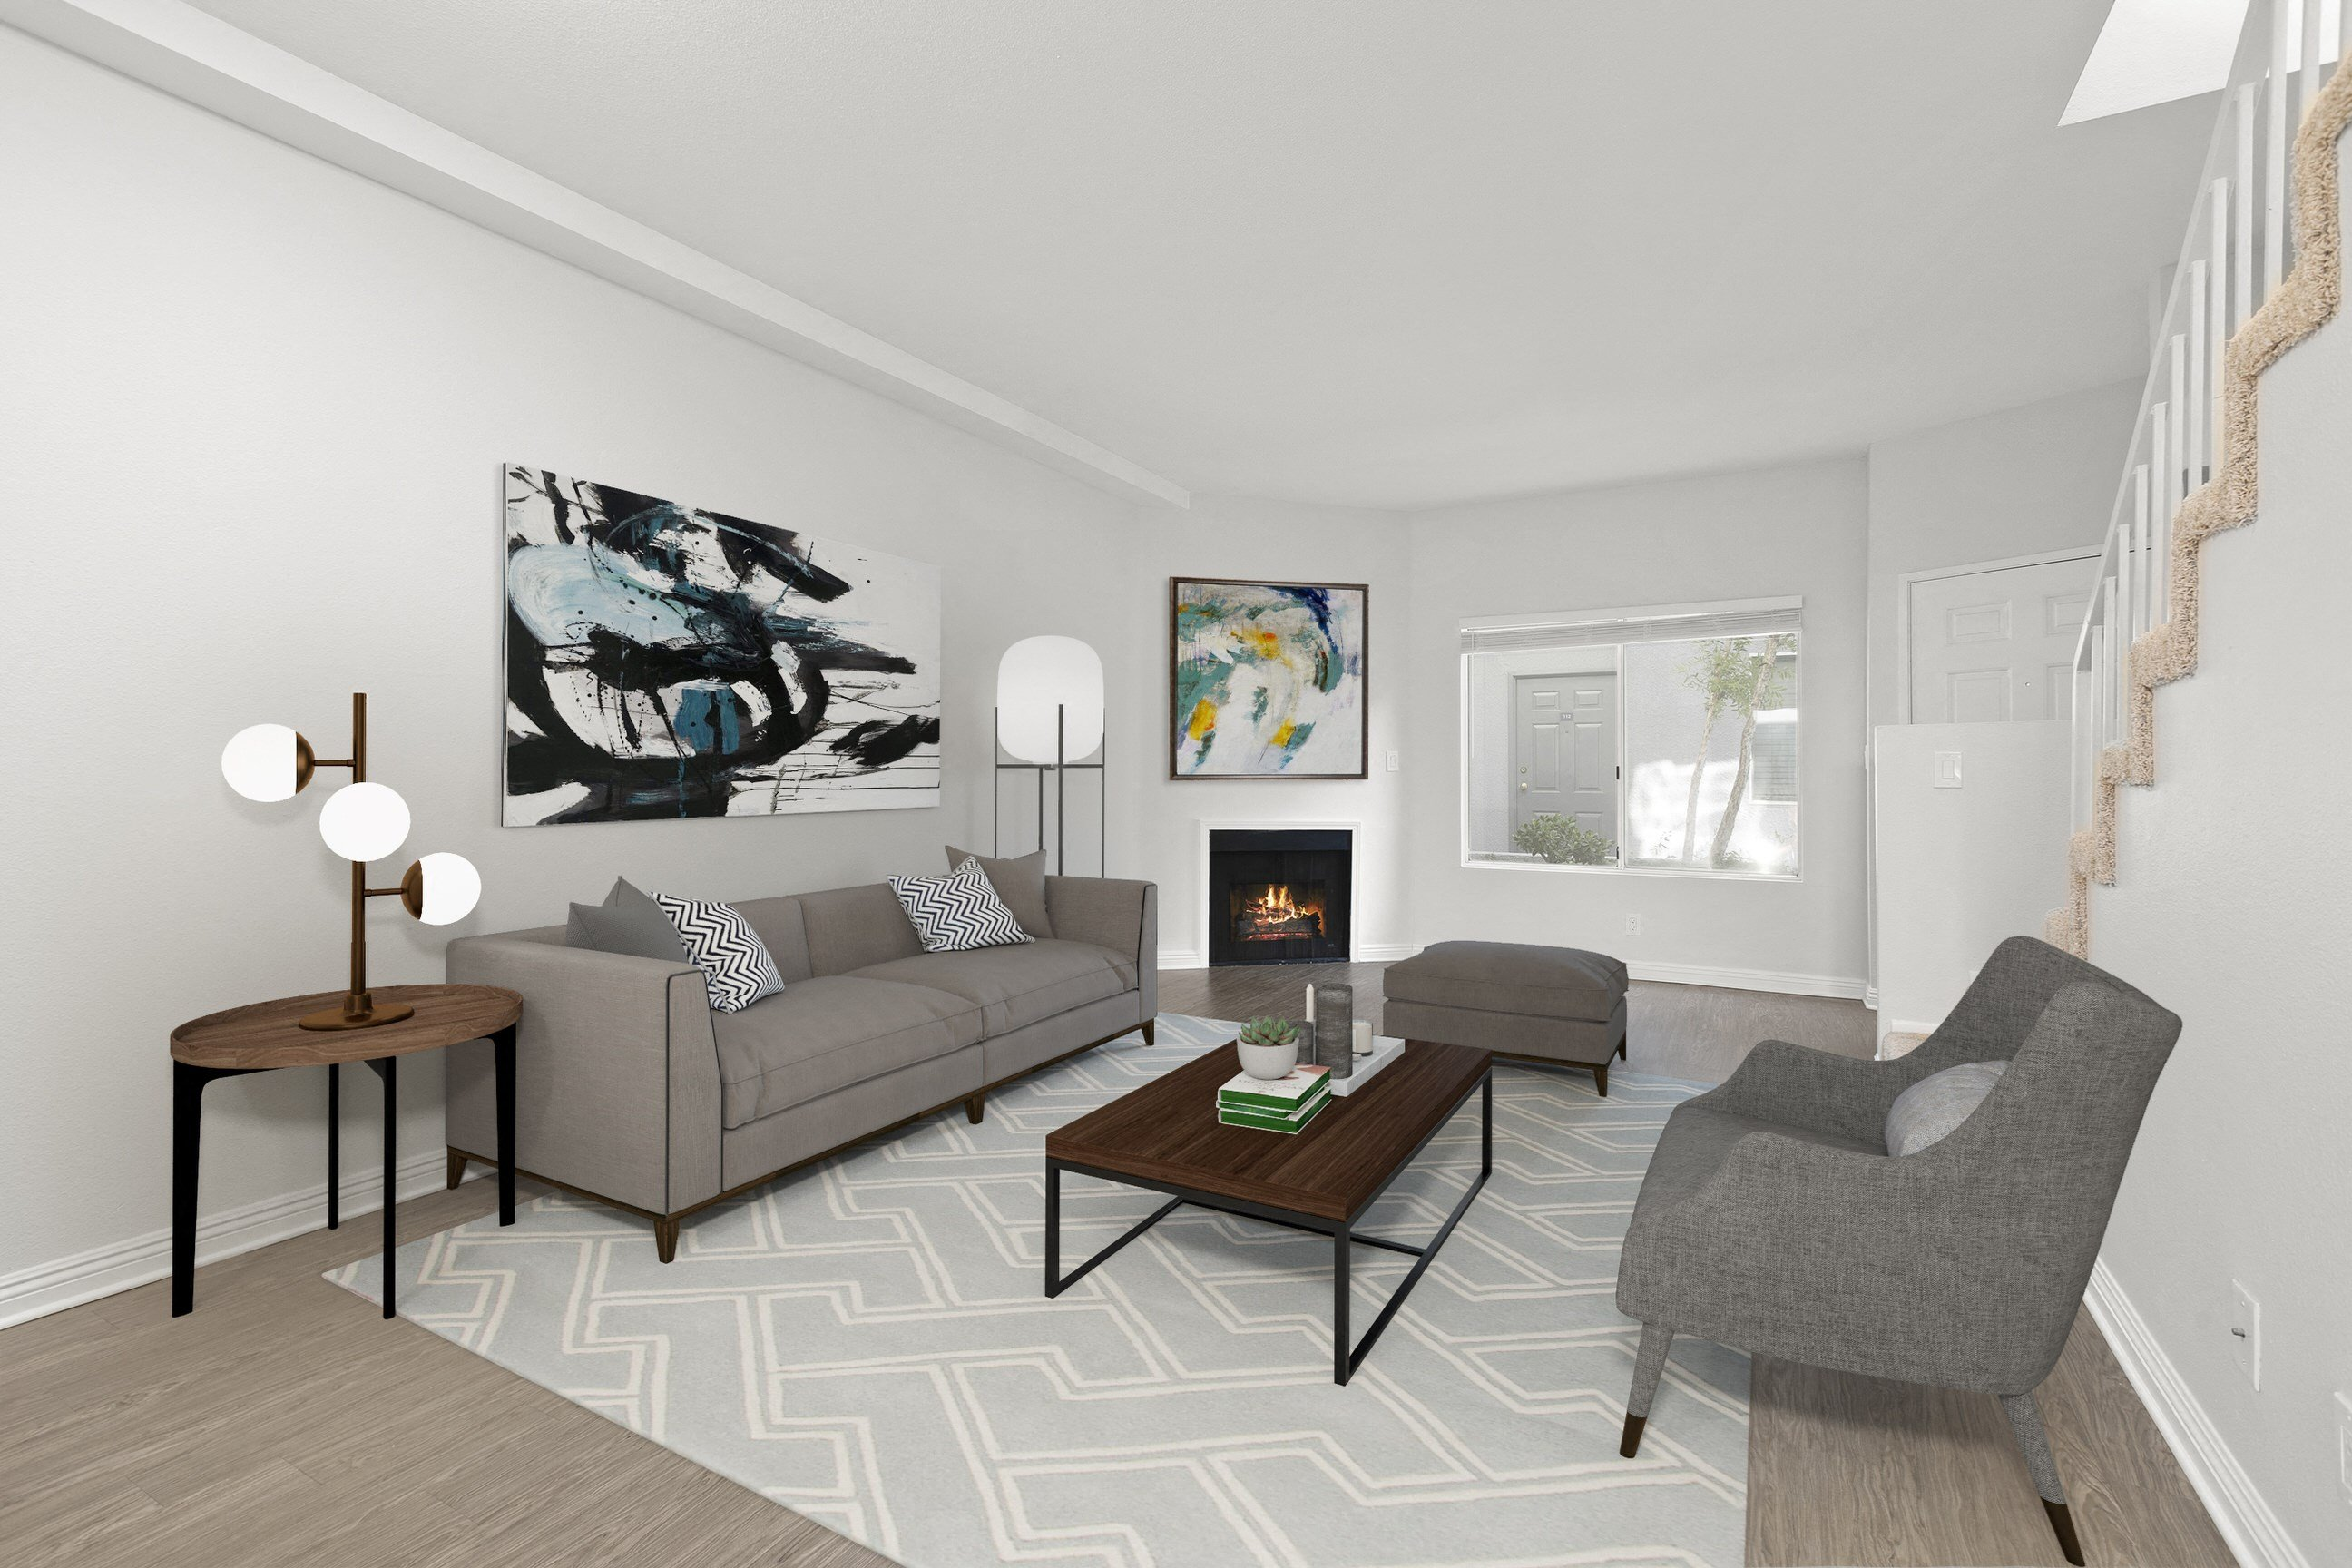 Living Area at NoVa Townhomes 8761 De Soto Ave, Canoga Park, CA 91304